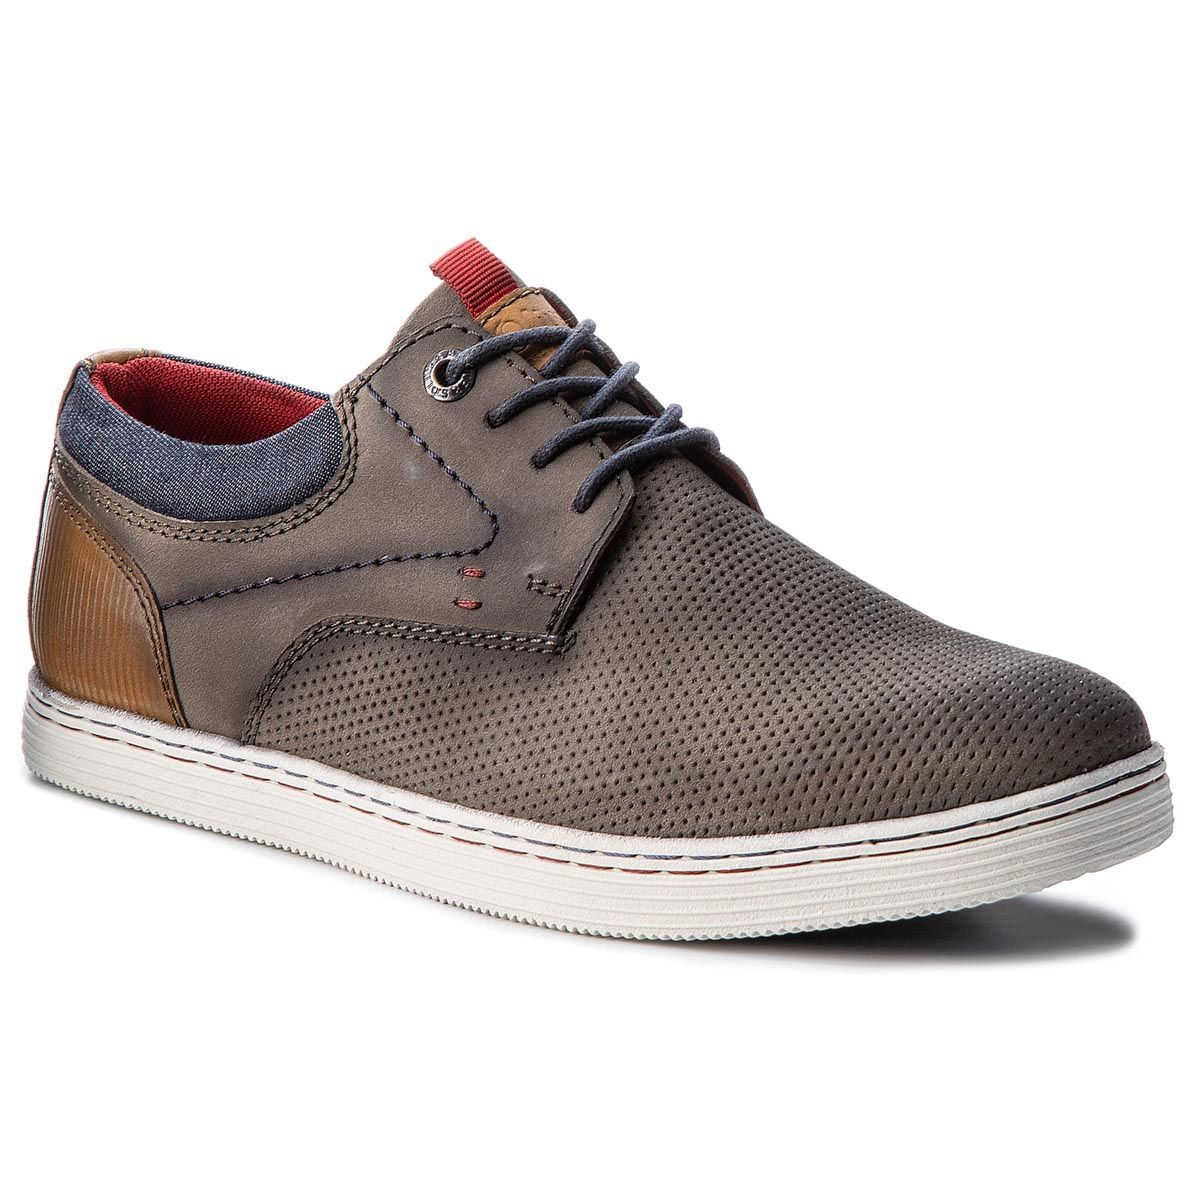 Shoes S.OLIVER | Boots in 2019 | Shoes, Casual shoes